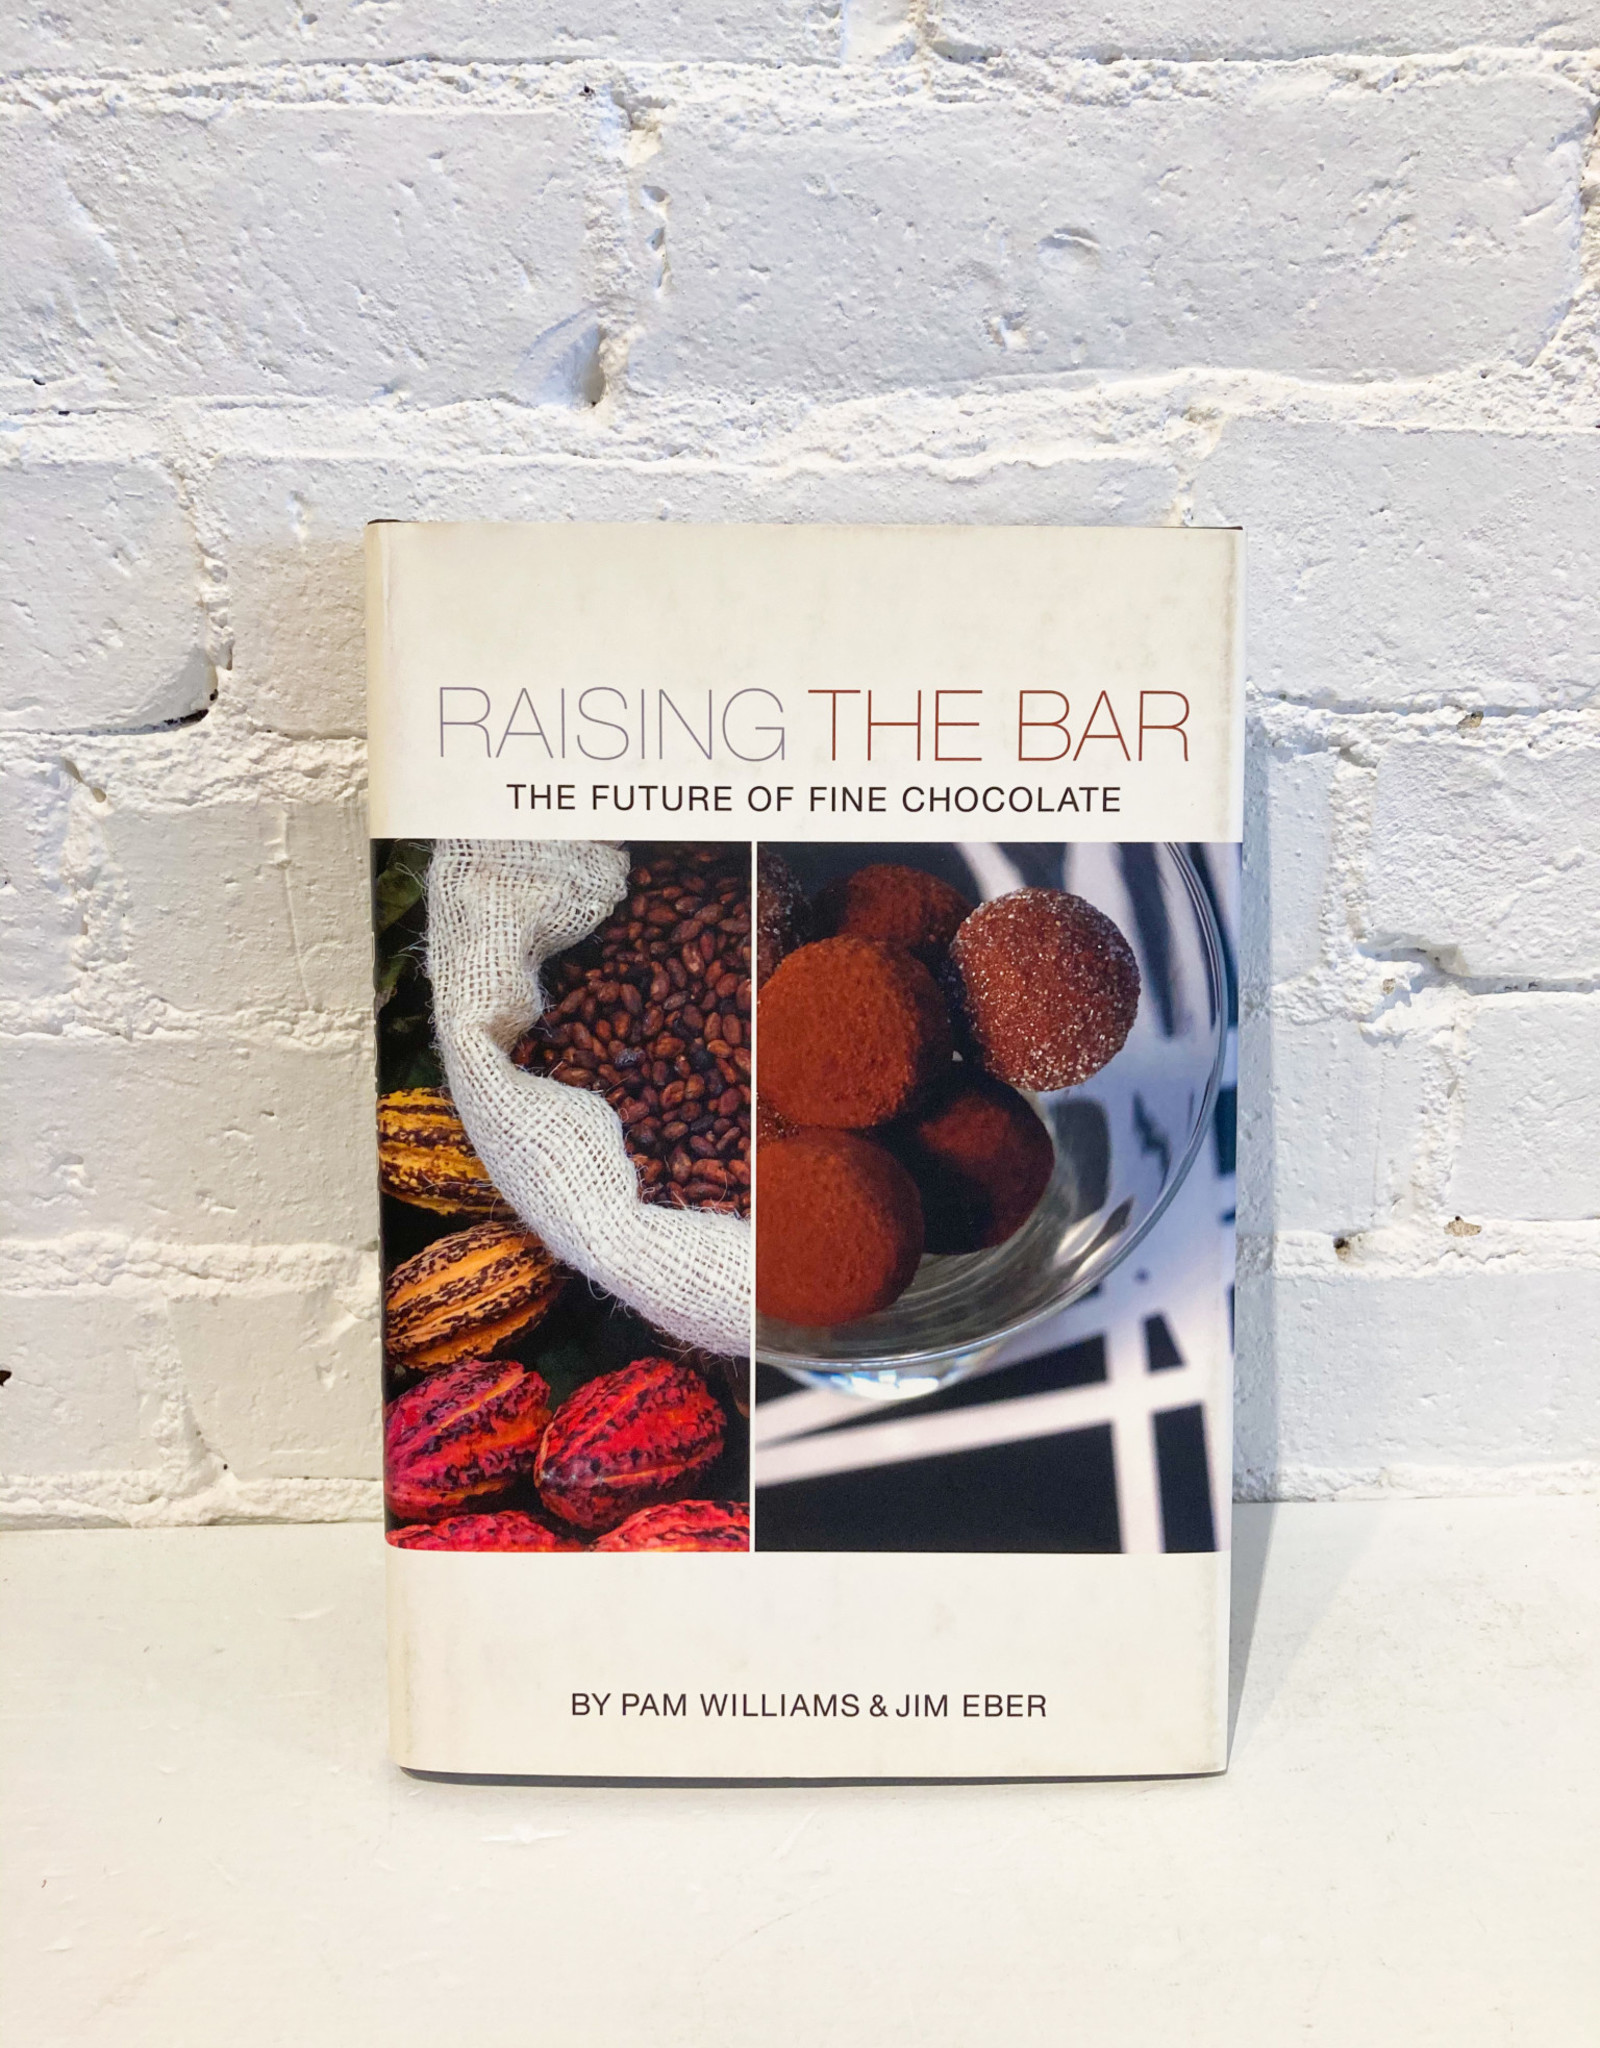 Raising the Bar by Pam Williams & Jim Eber